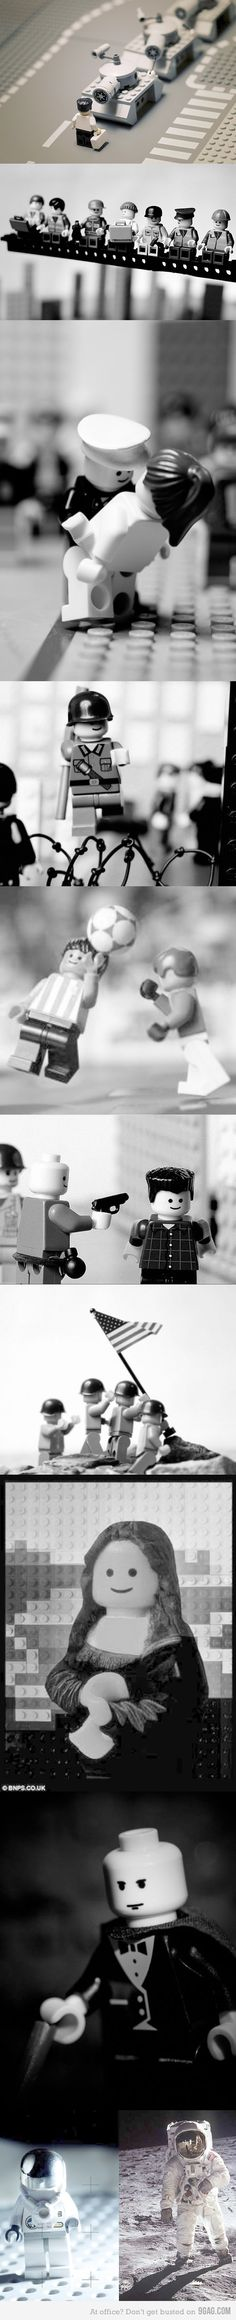 Lego recreation of famous pics